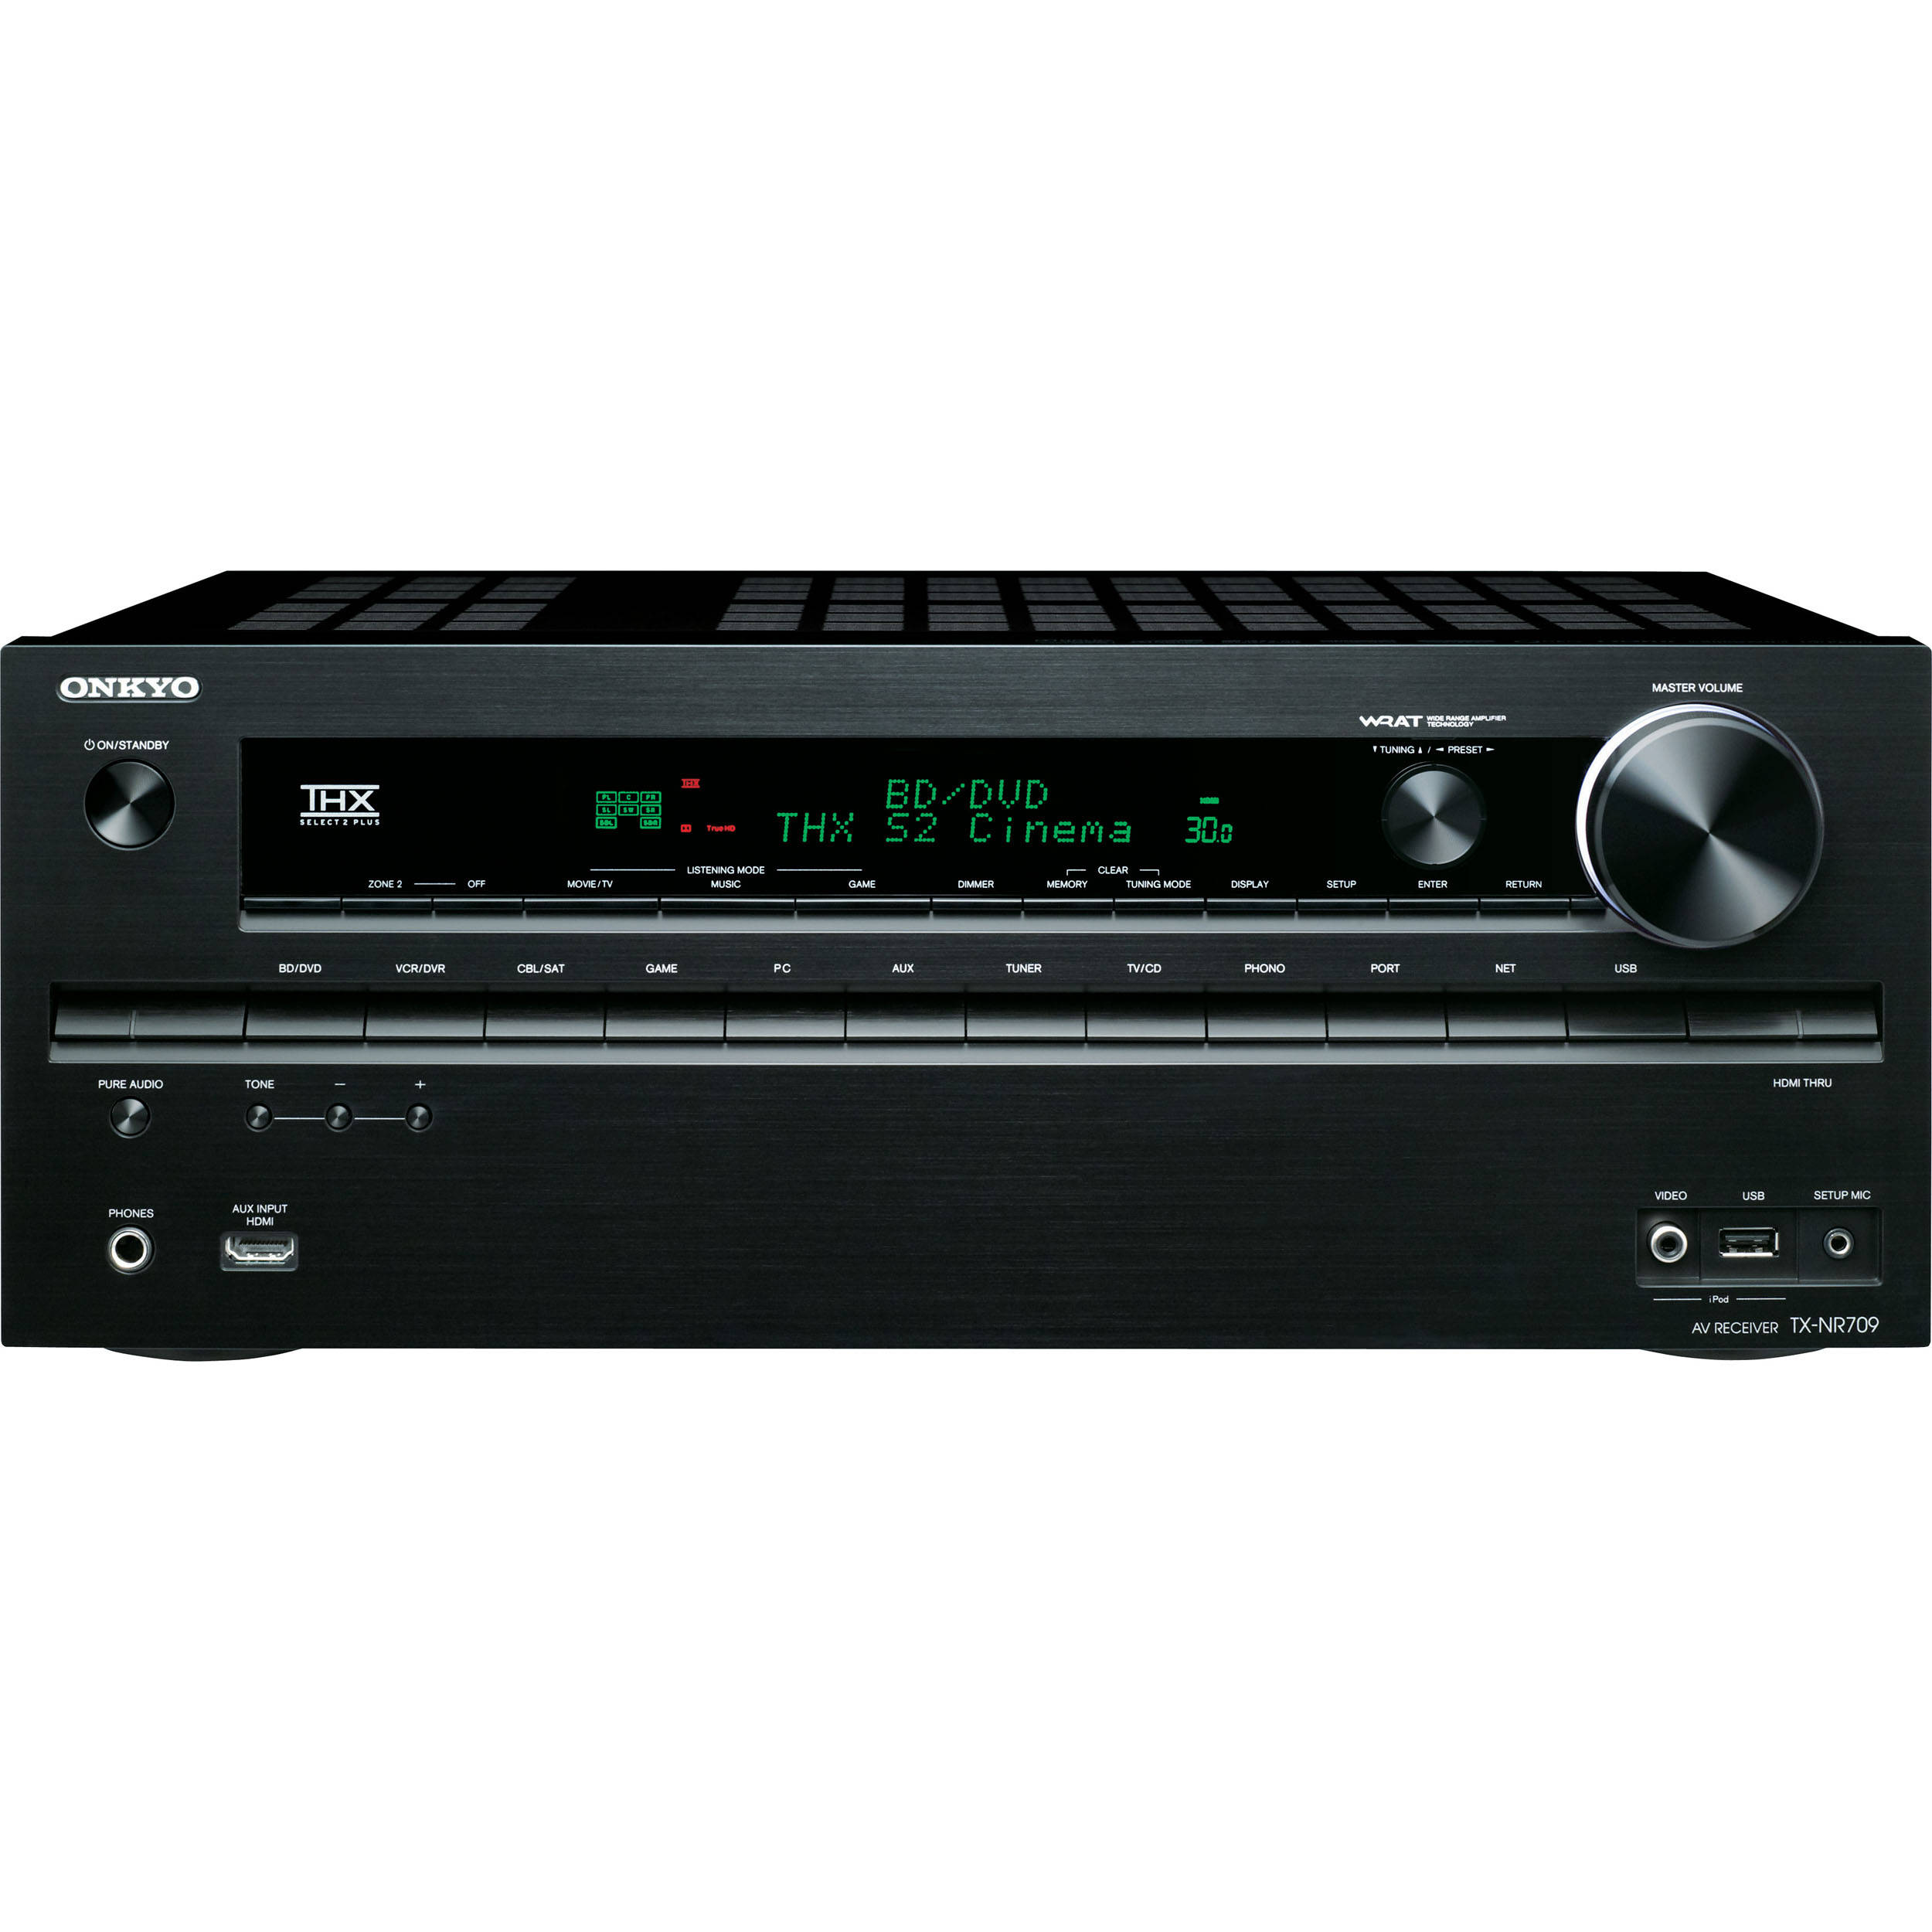 Driver for Onkyo TX-NR709 Network A/V Receiver